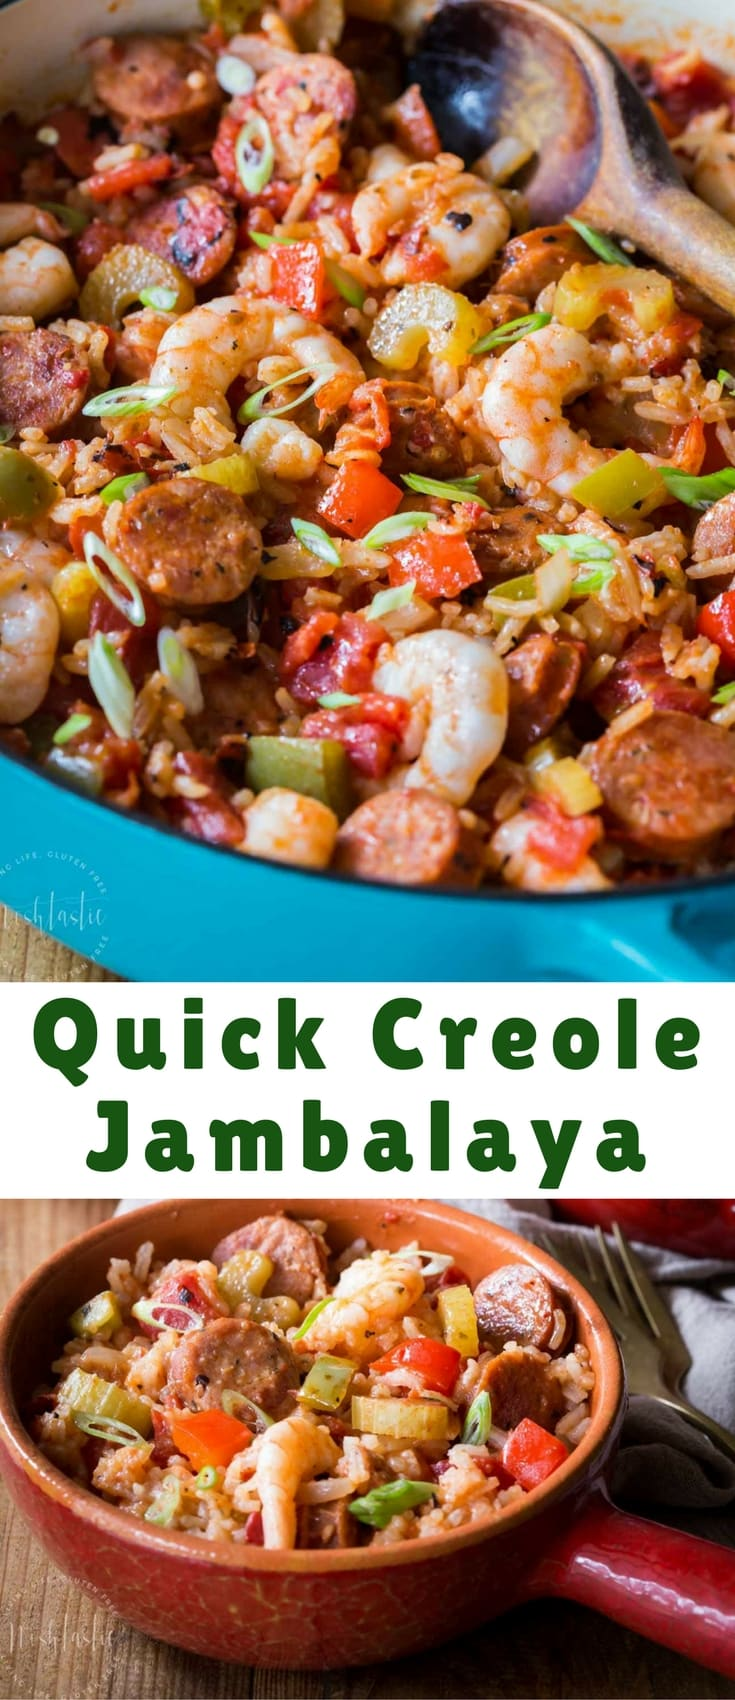 You can make this authentic homemade Creole Jambalaya Recipe really quickly on your stovetop, it's flavor packed with bell peppers, celery, onions, spices, Andouille sausage and shrimp, you'll love it! gluten free and dairy free.